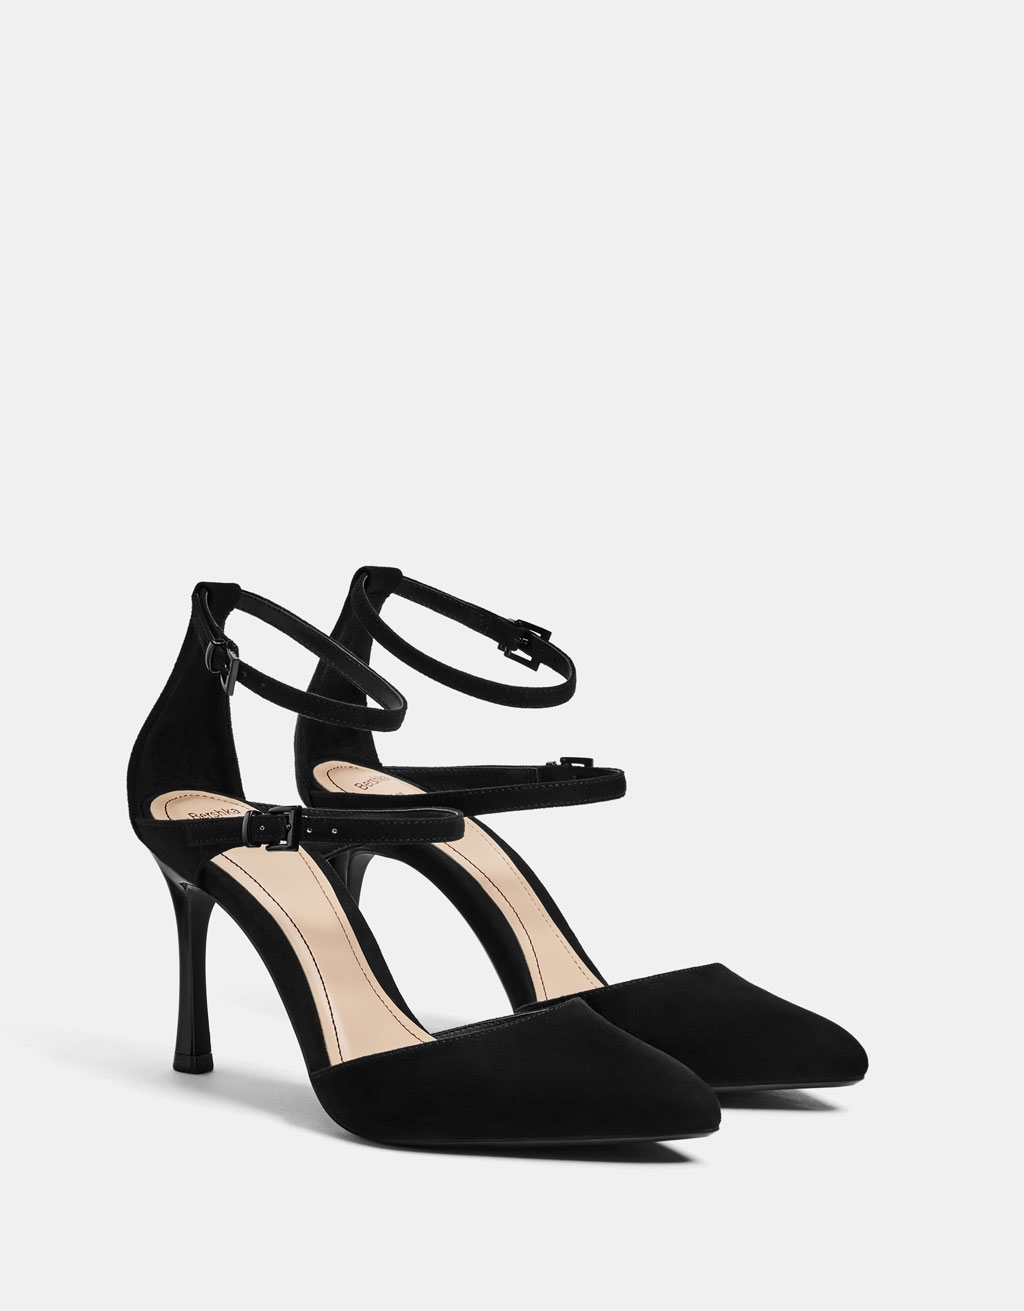 Strappy stiletto heel shoes